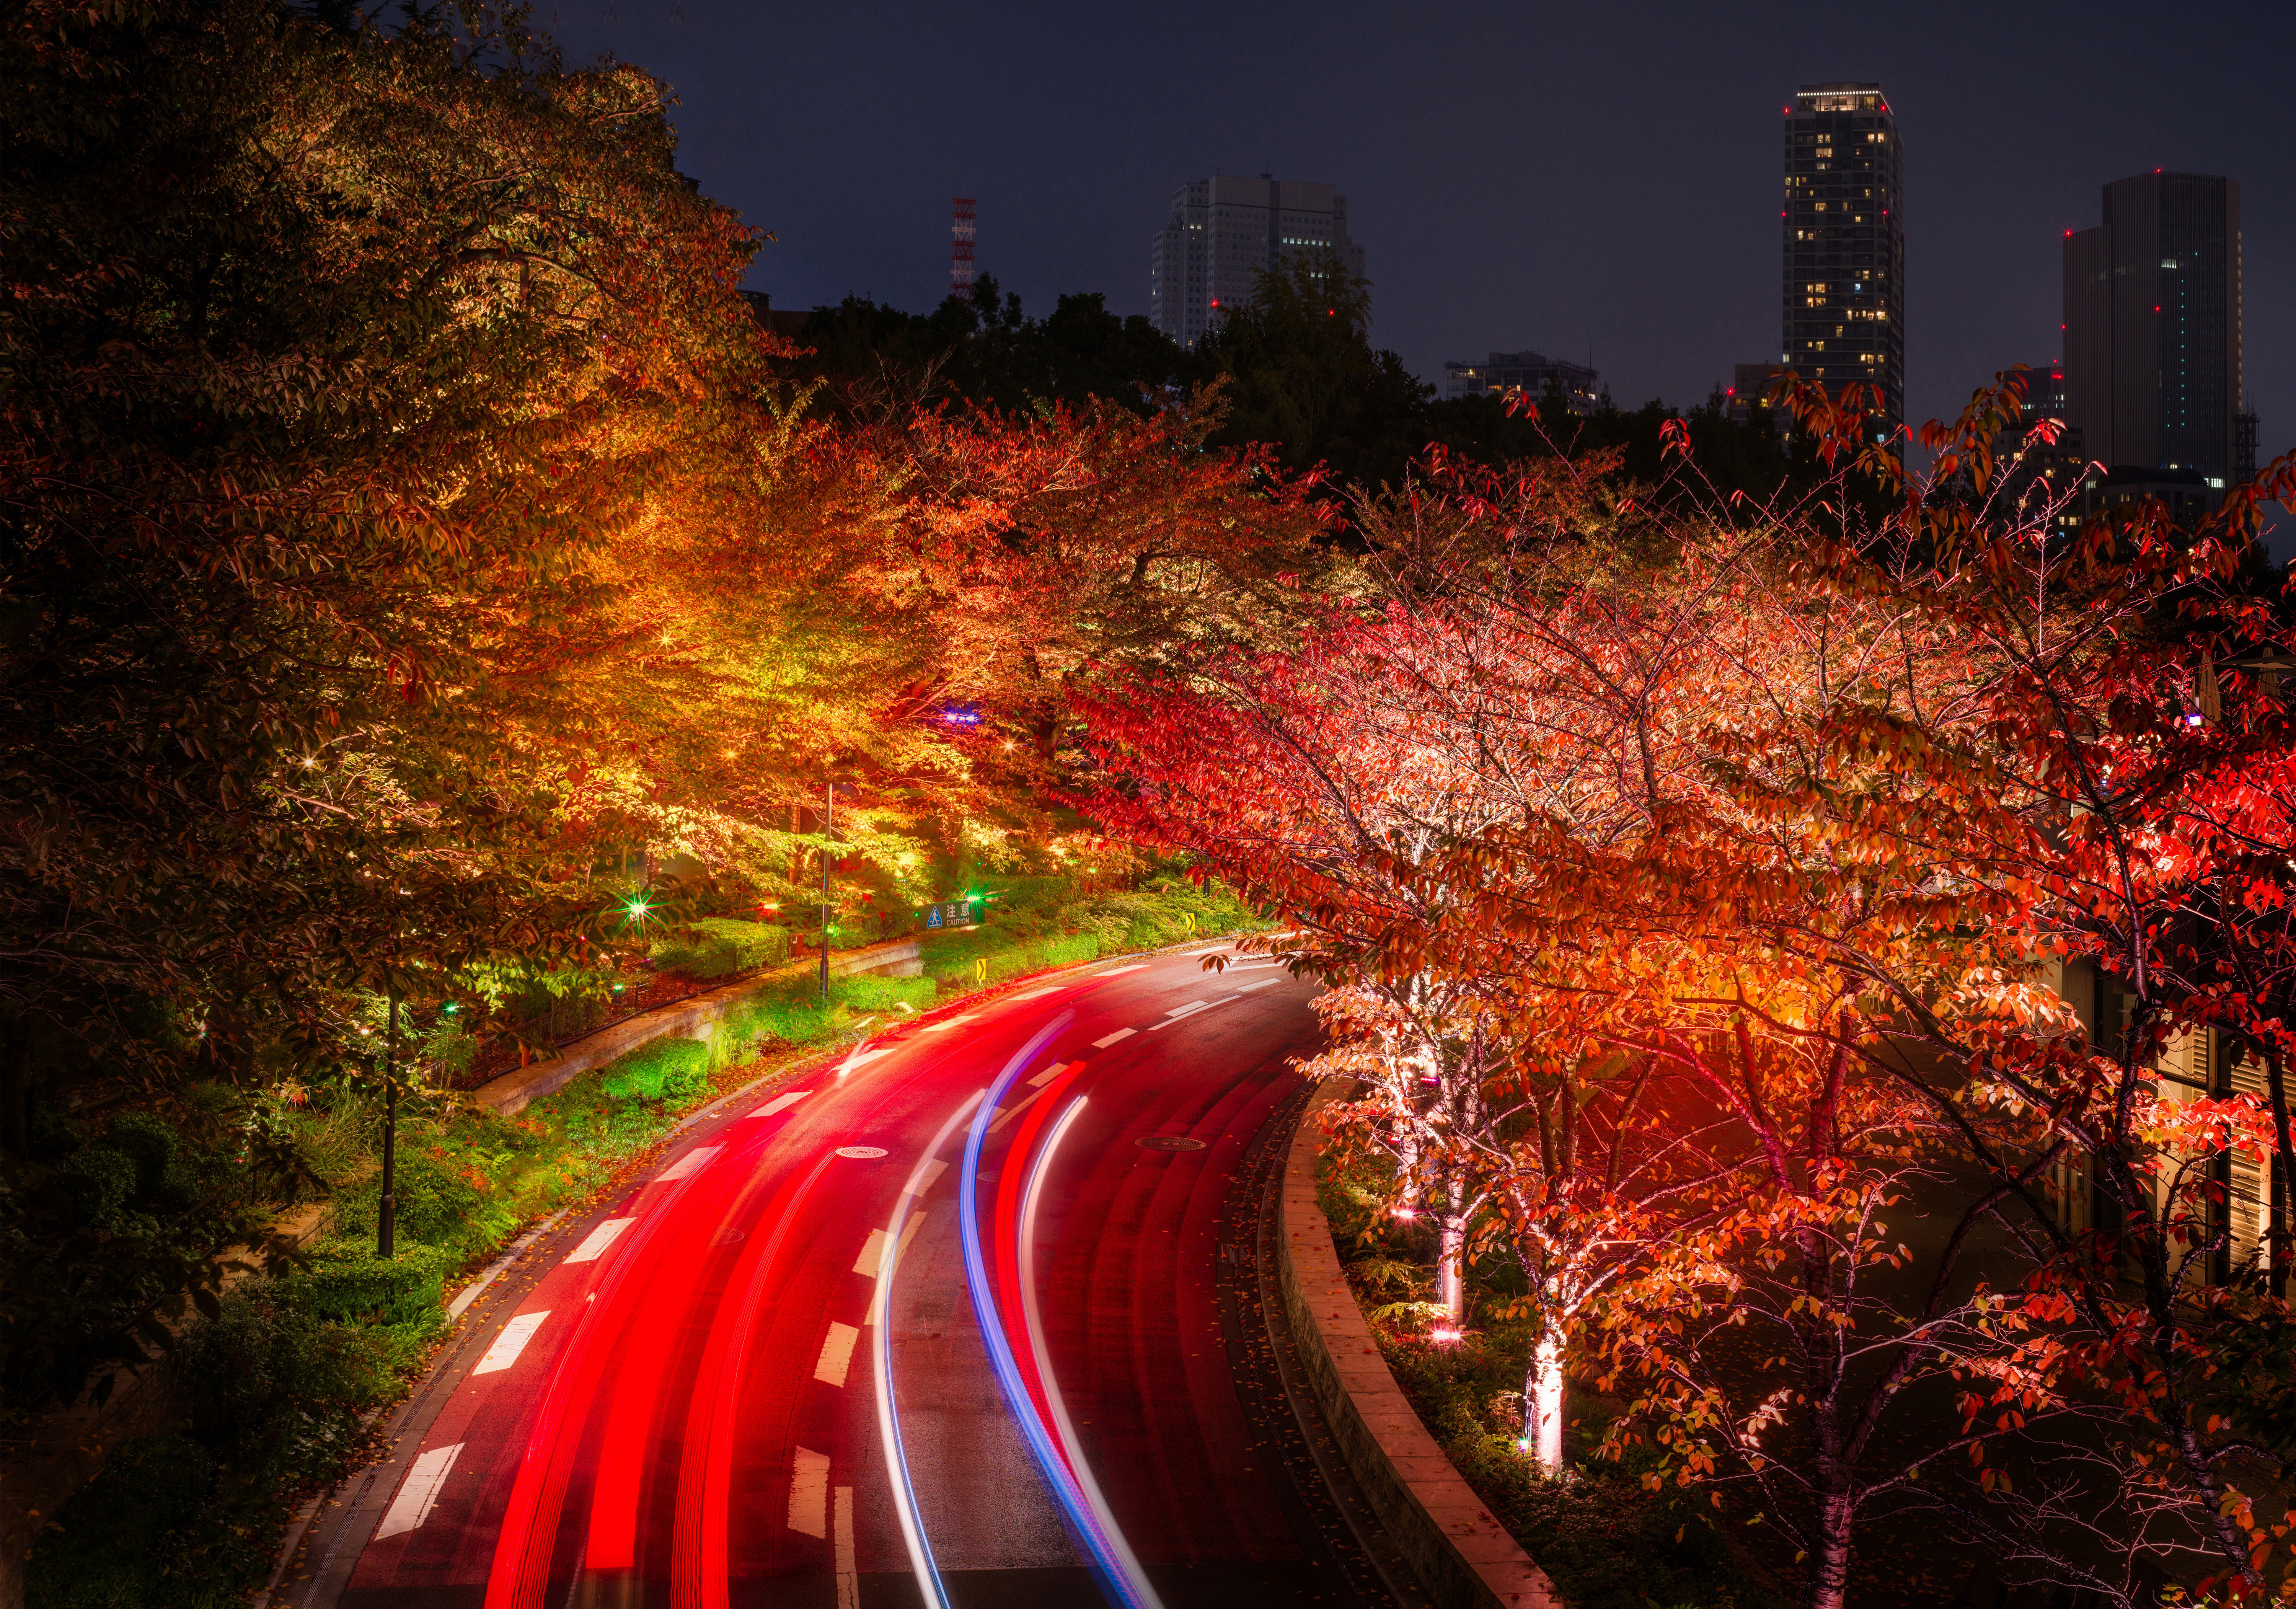 Japan tokyo roads autumn trees night hd nature 4k wallpapers images backgrounds photos and - Tokyo japan wallpaper ...